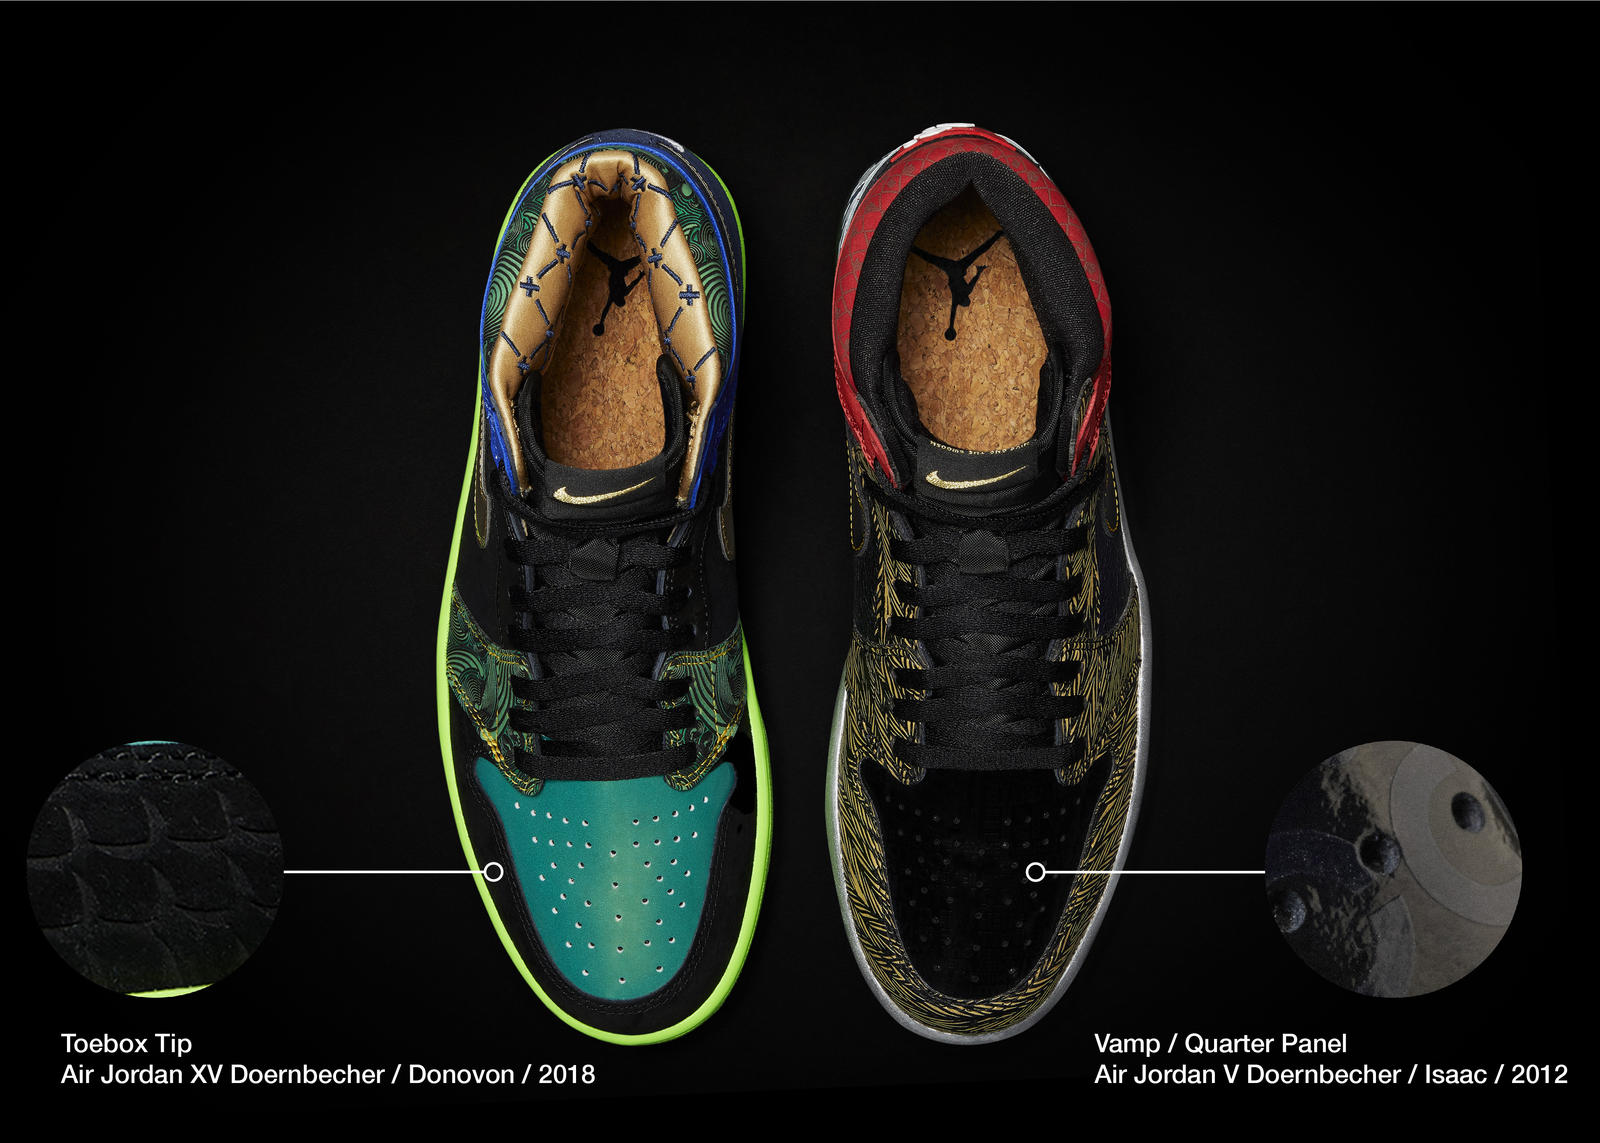 Nike Doernbecher Freestyle 2021 Air Jordan I What The Official Images Release Date 2